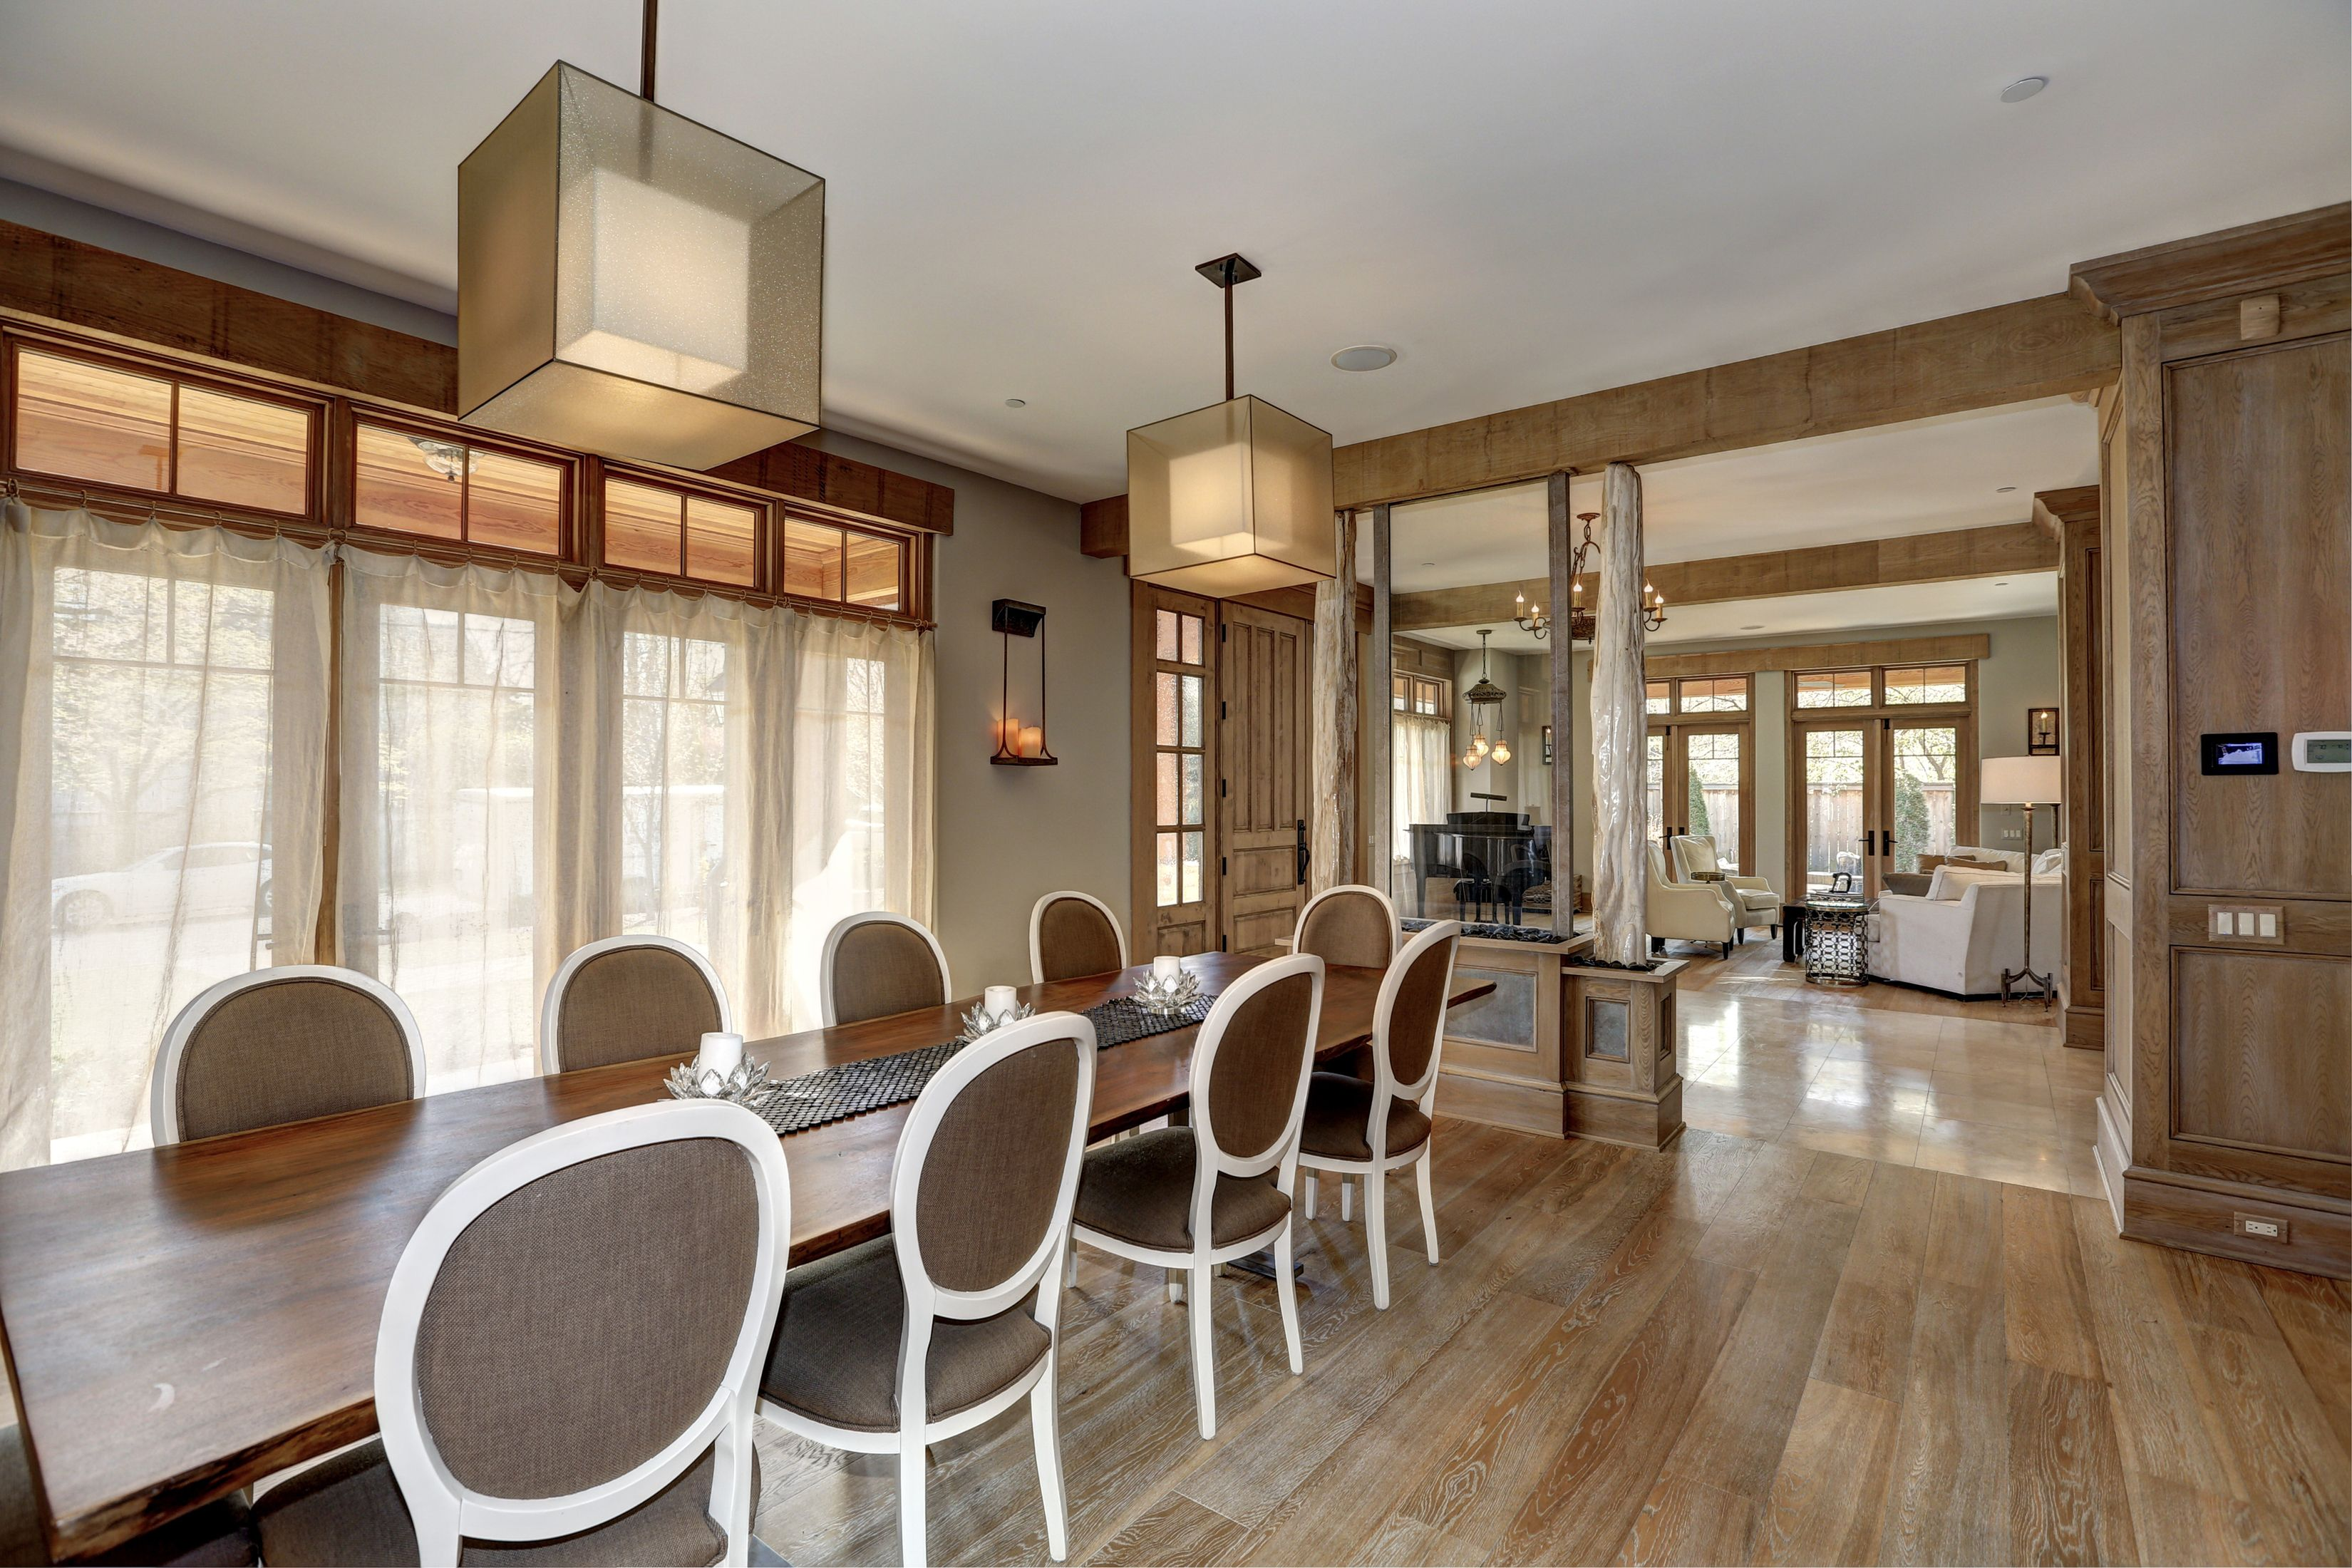 7700 Oldchester Road In Bethesda Maryland This Incredible And